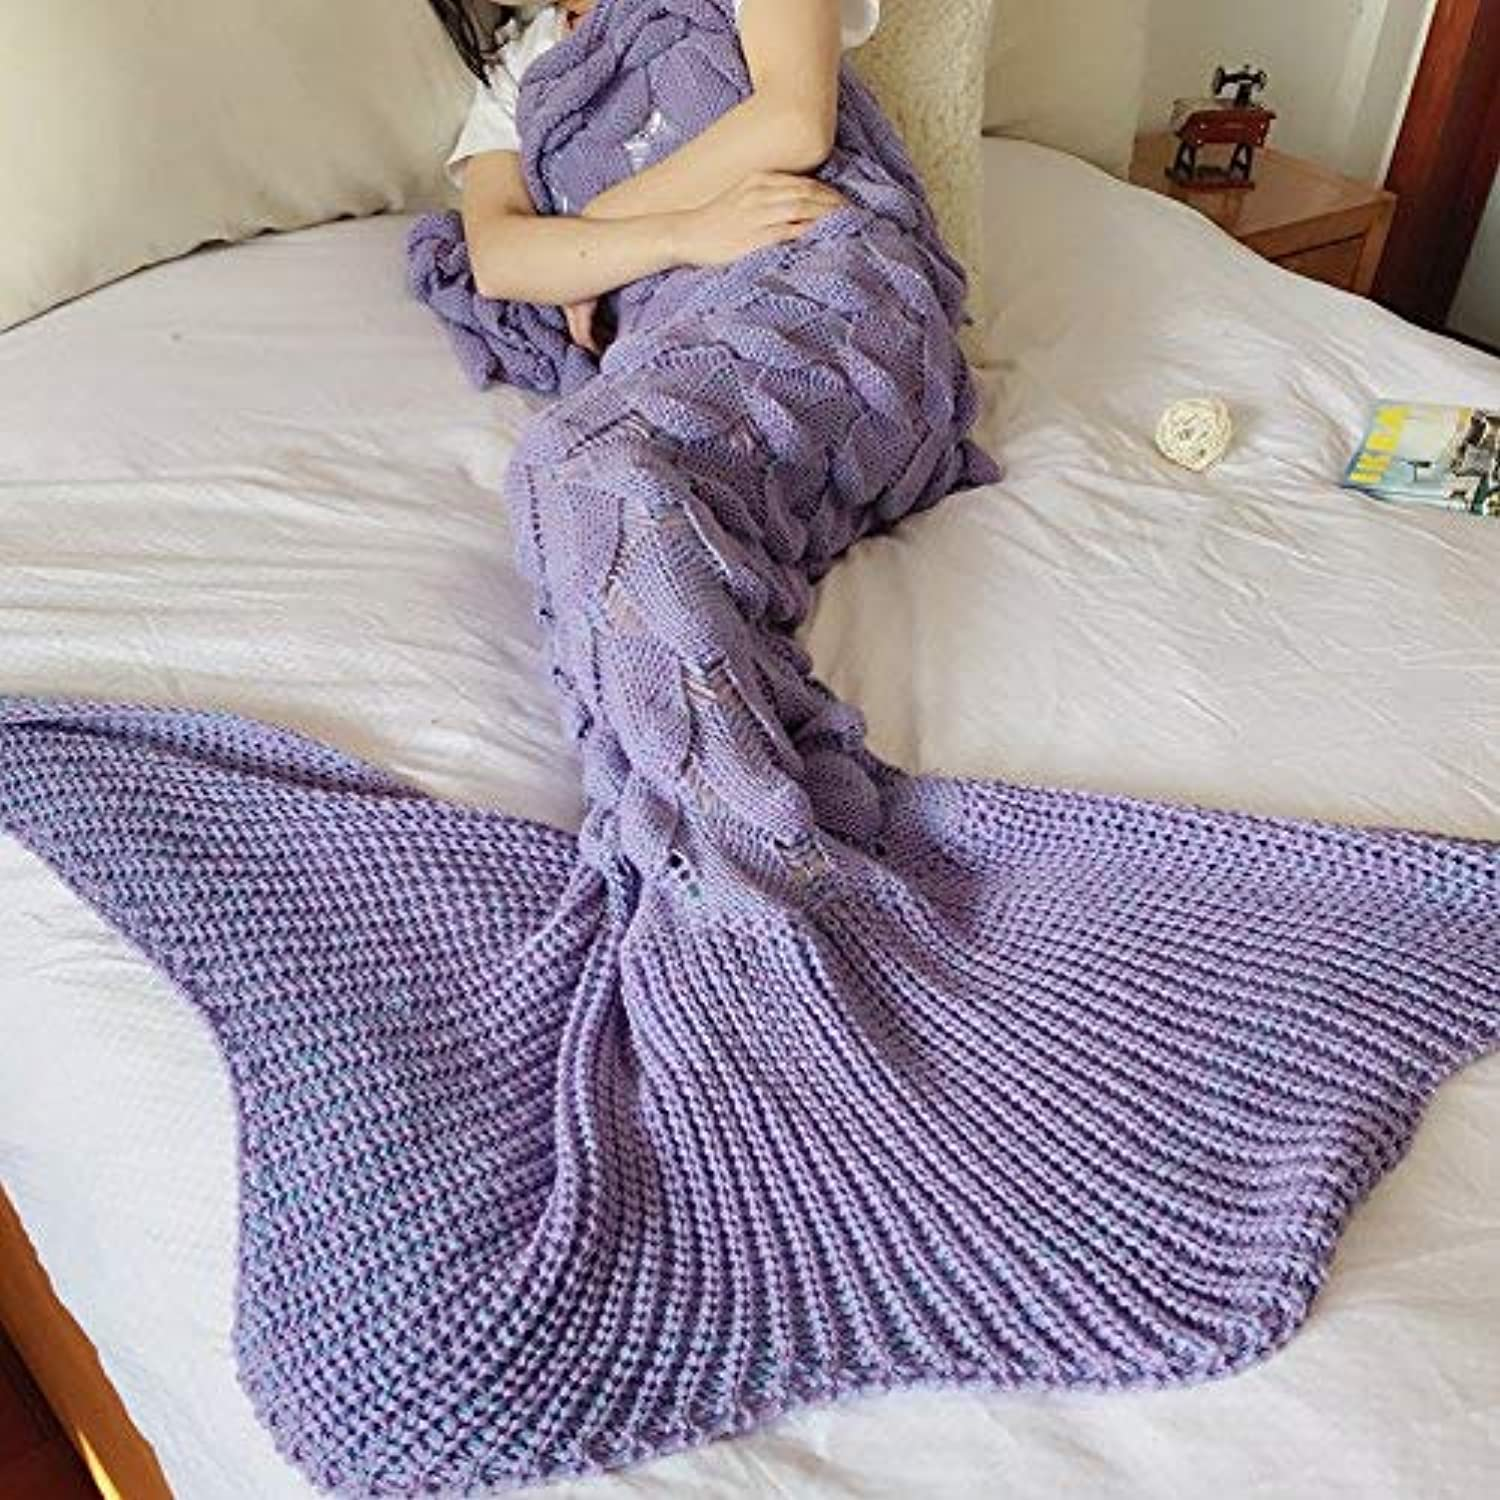 JINGB Home Mermaid Tail Knit Mermaid Sofa, bluee, 180  80CM (71  31.5 inch) (color   Light Purple, Size   180  80CM)